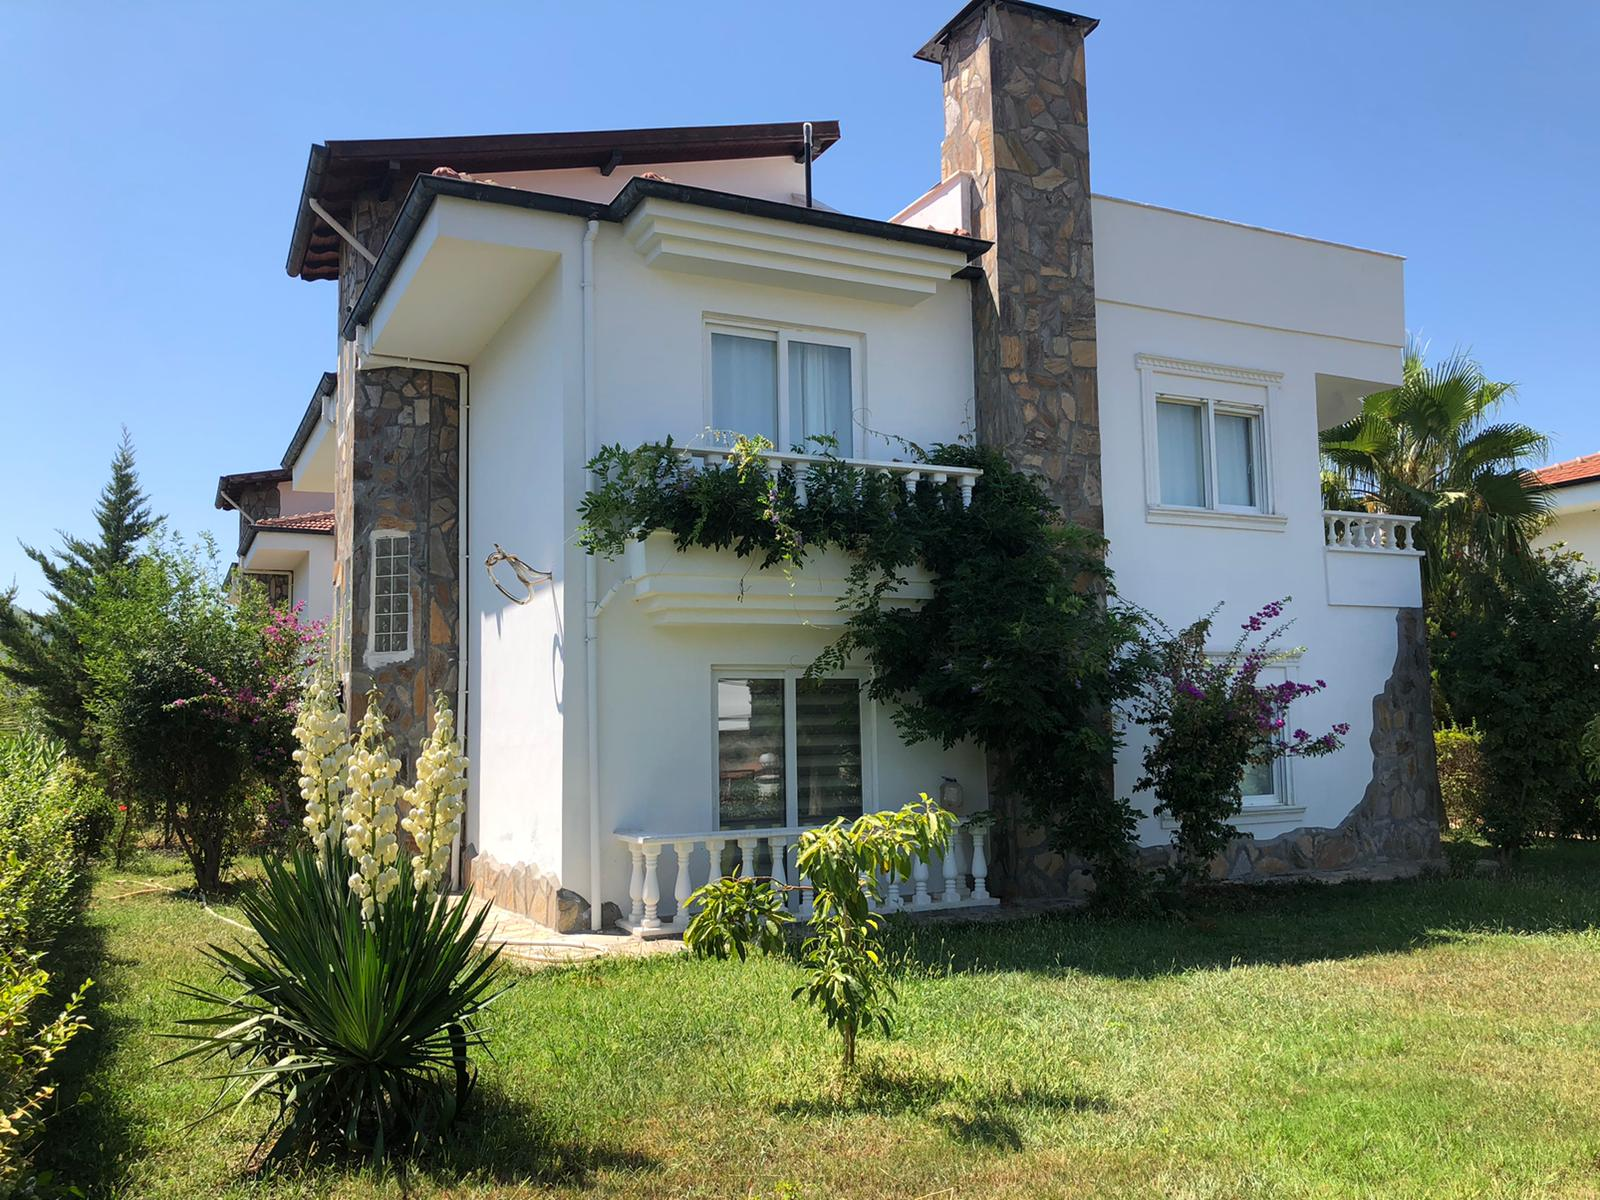 House in Alanya by the sea